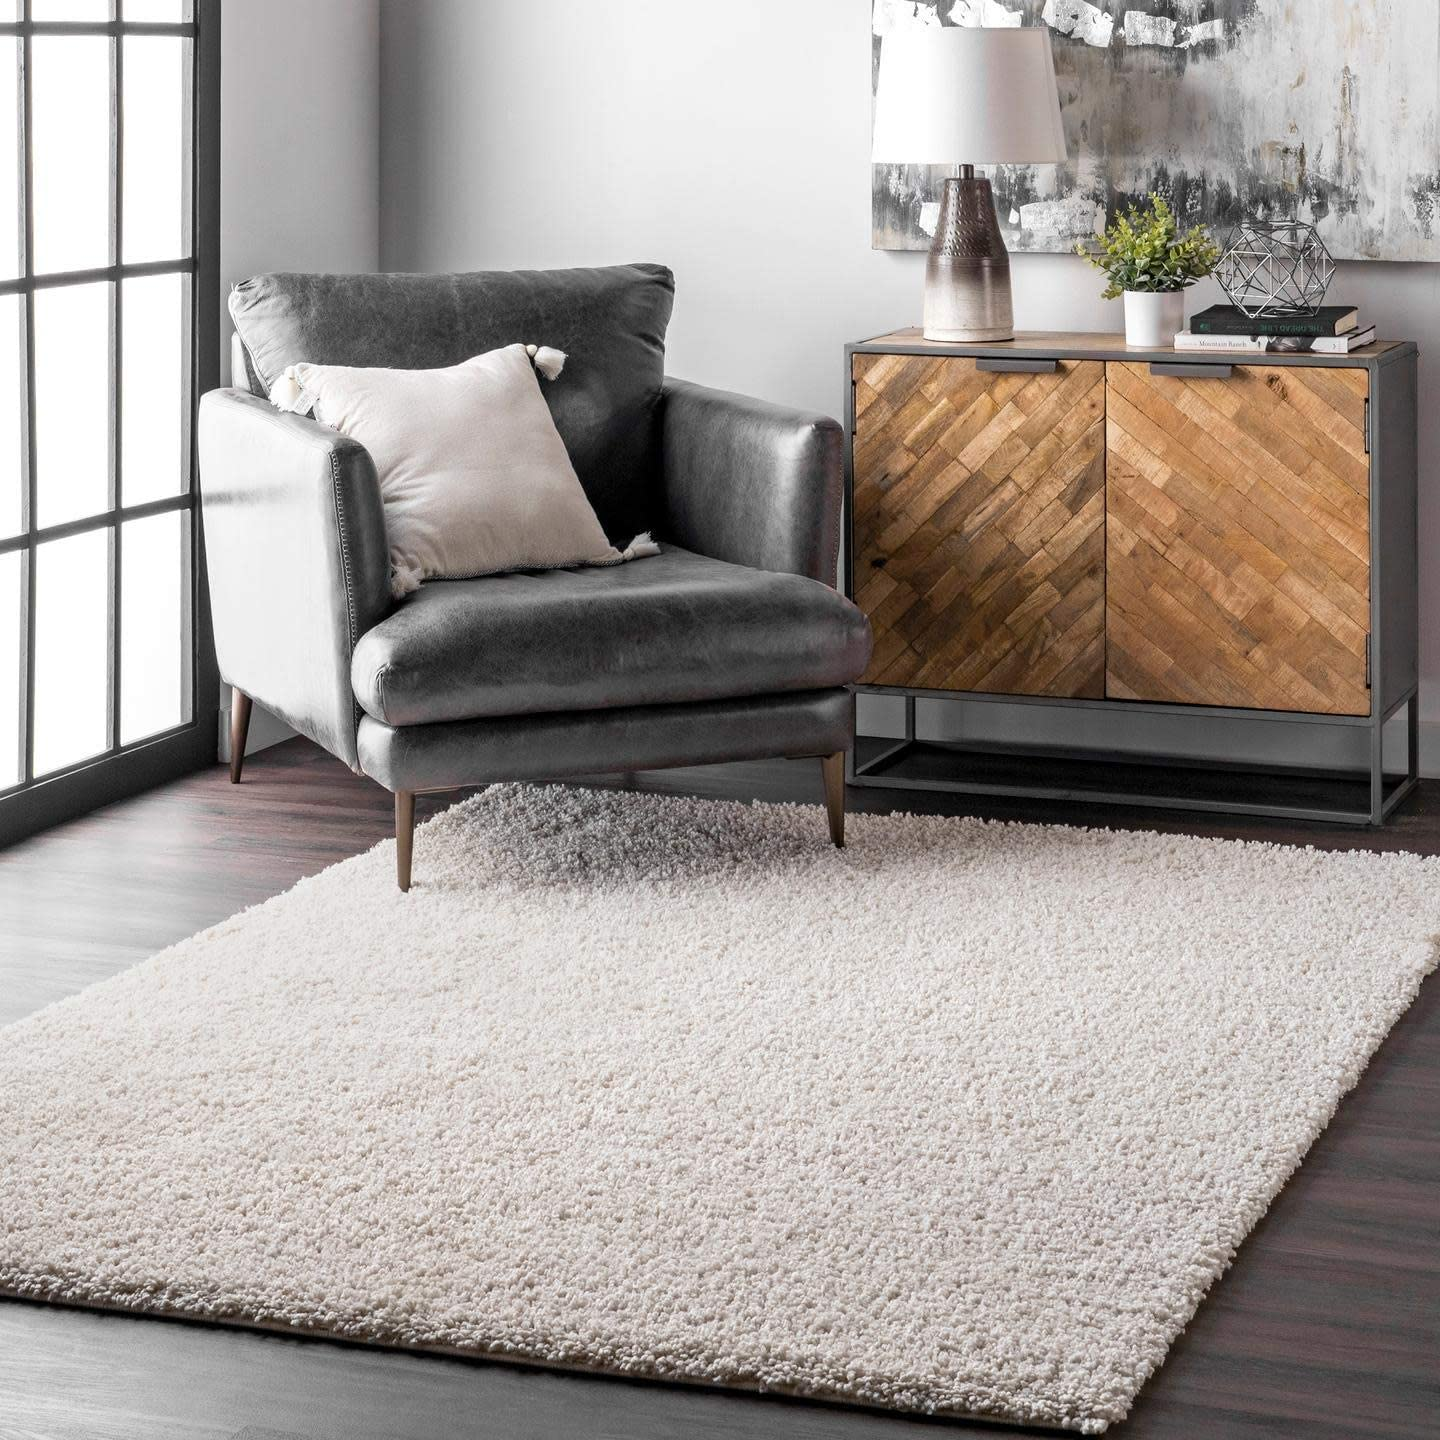 nuLOOM Clare Solid Shag Area Rug - the best living room rug for the money